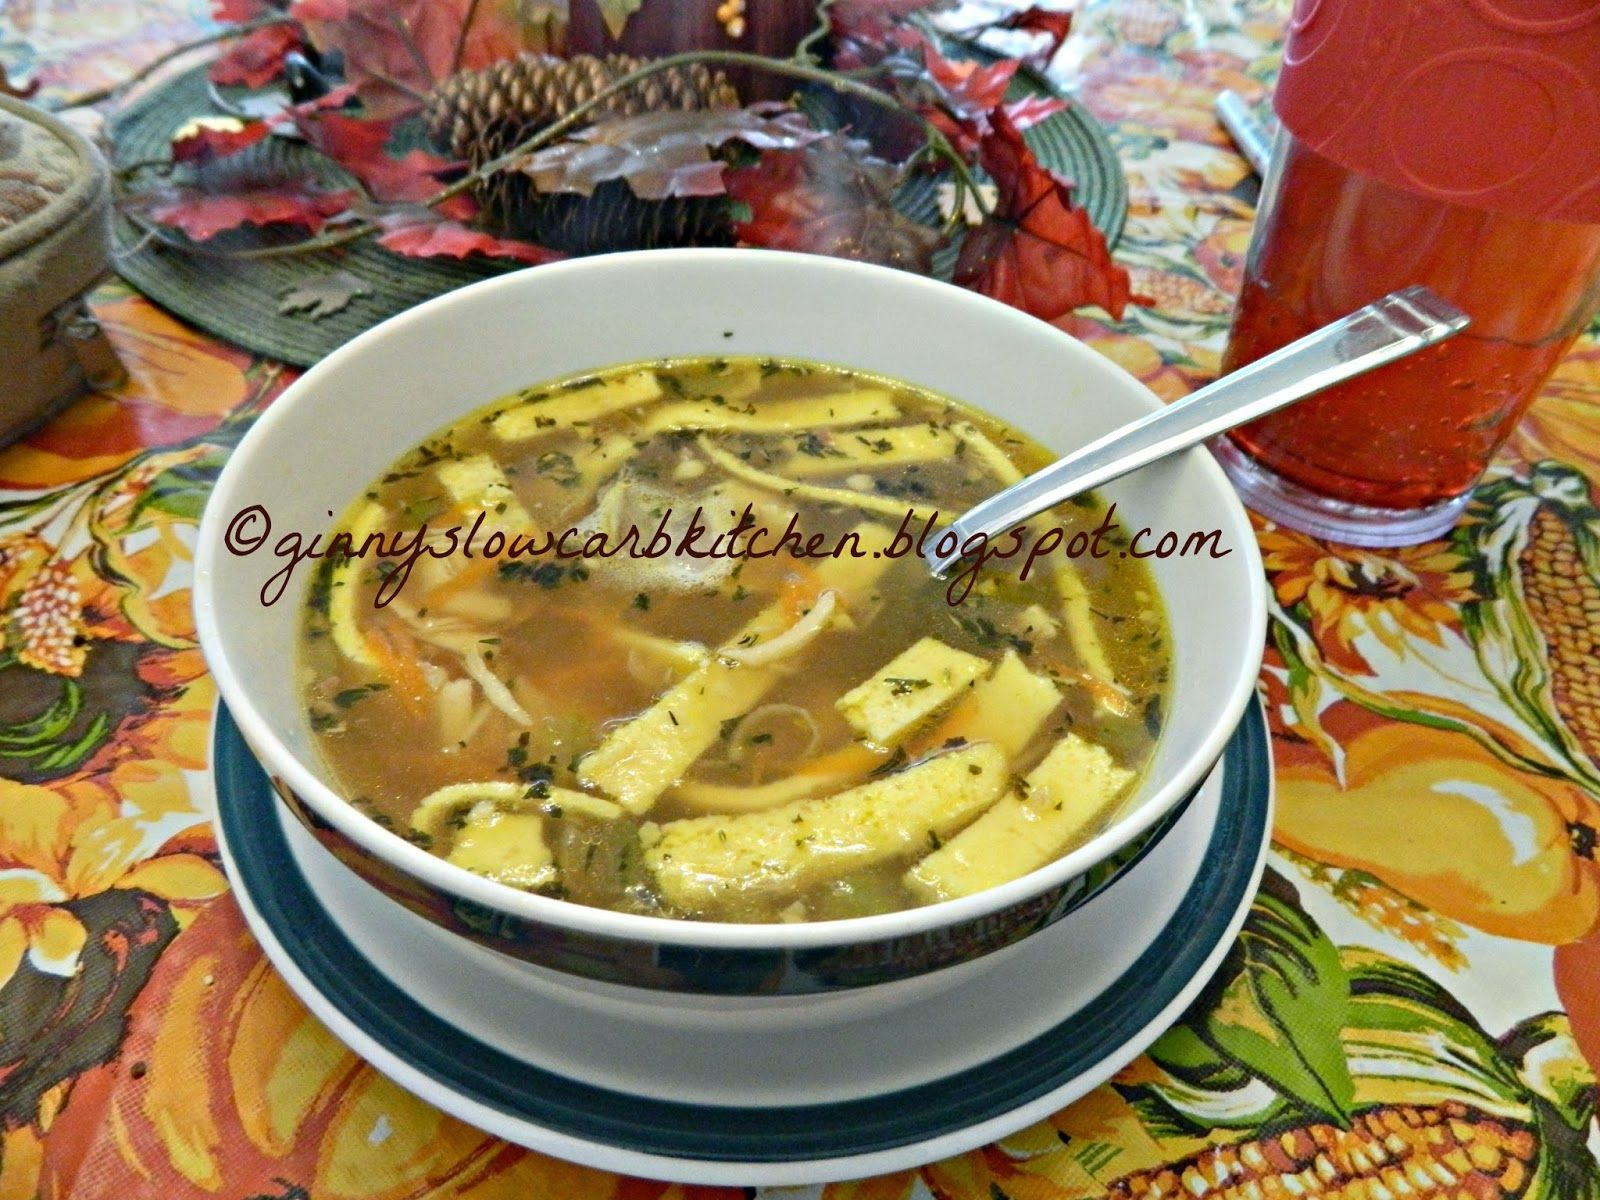 Ginny's Low Carb Kitchen: CHICKEN NOODLE SOUP, LC, GF